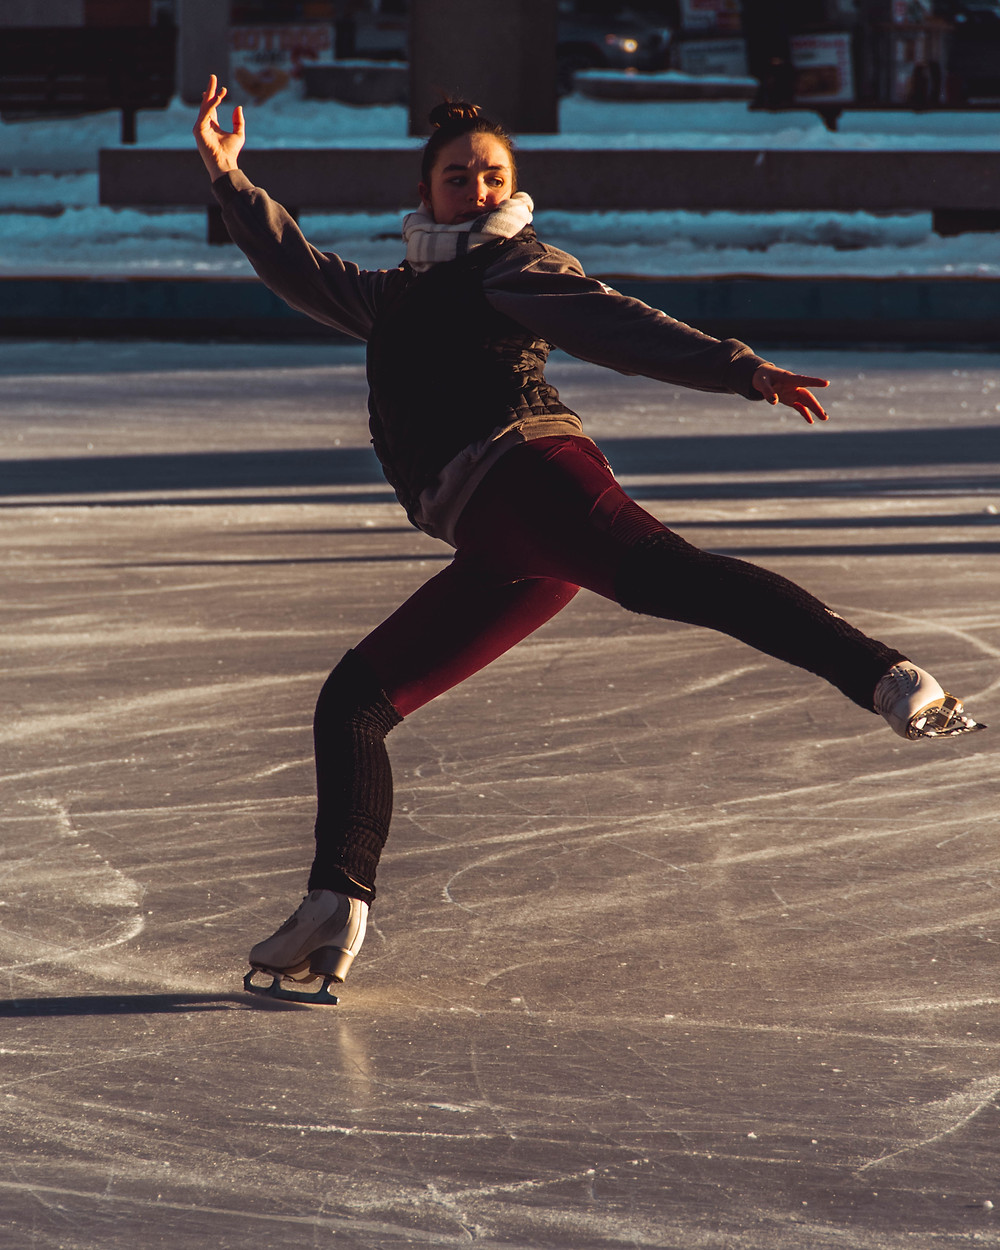 Lake County holiday events including ice skating in Eustis